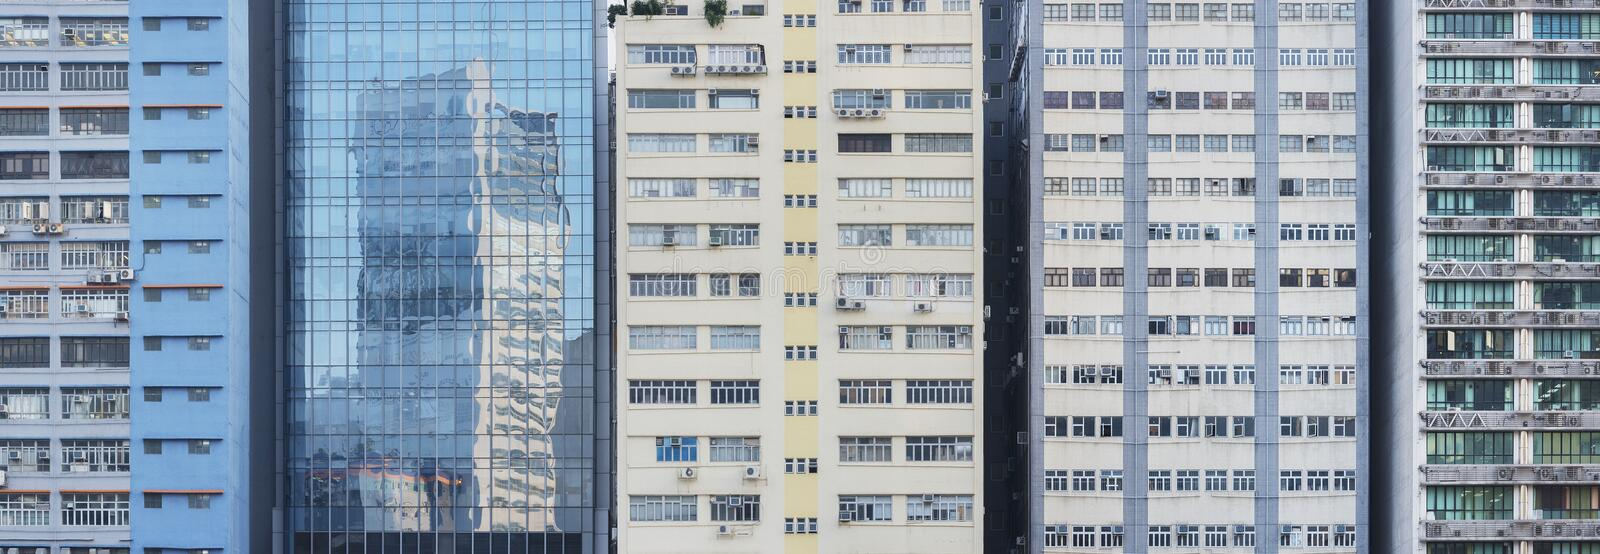 Facade of industrial buildings in Hong Kong city stock photo